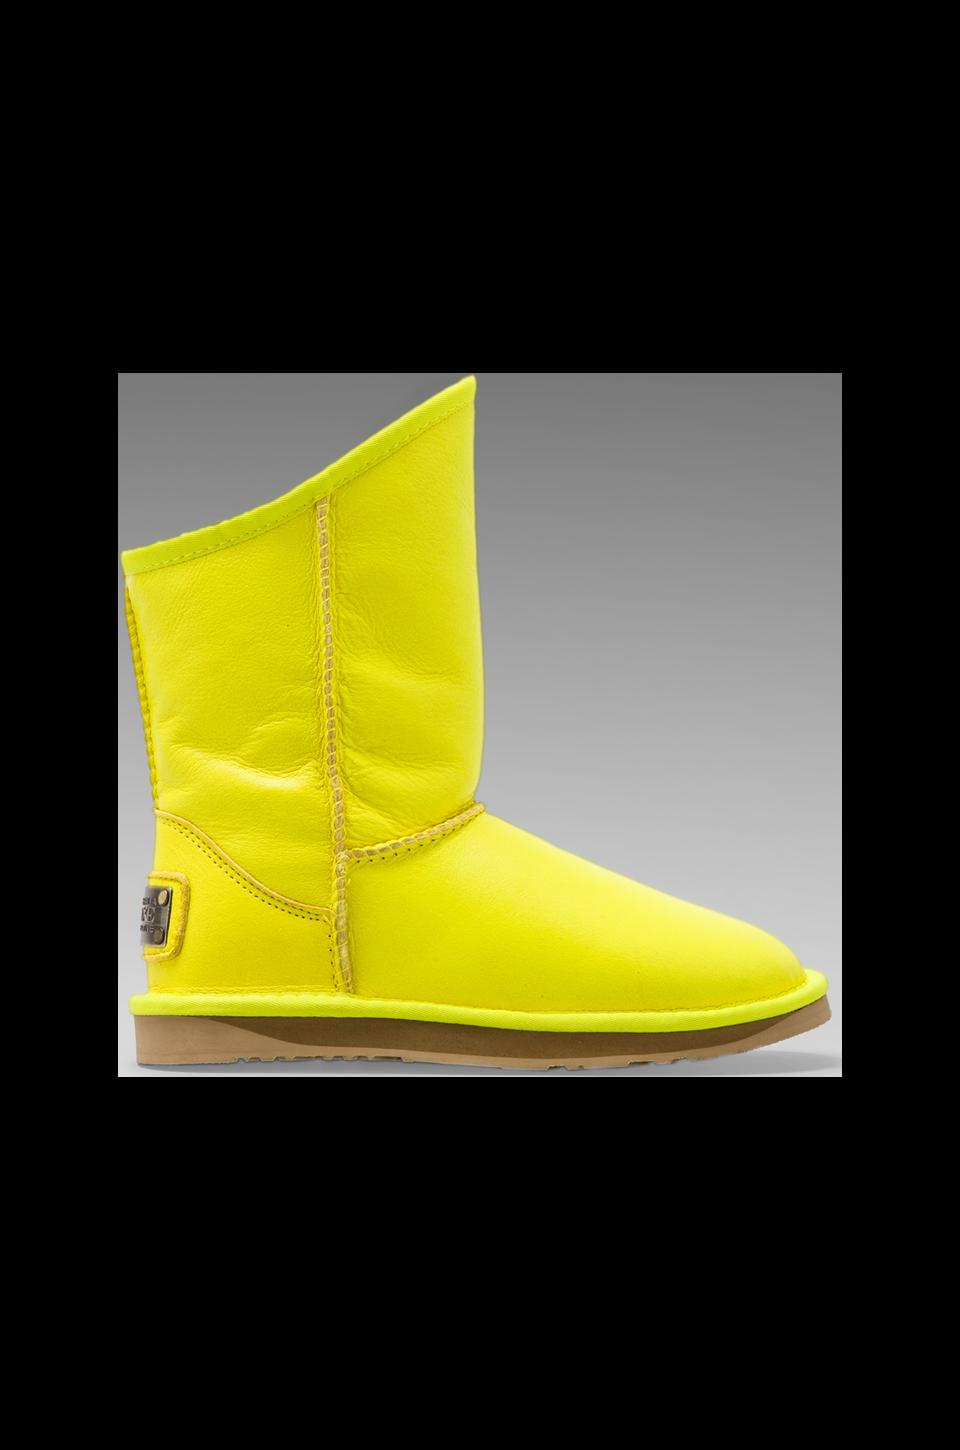 Australia Luxe Collective Cosy Short Boot in Neon Yellow